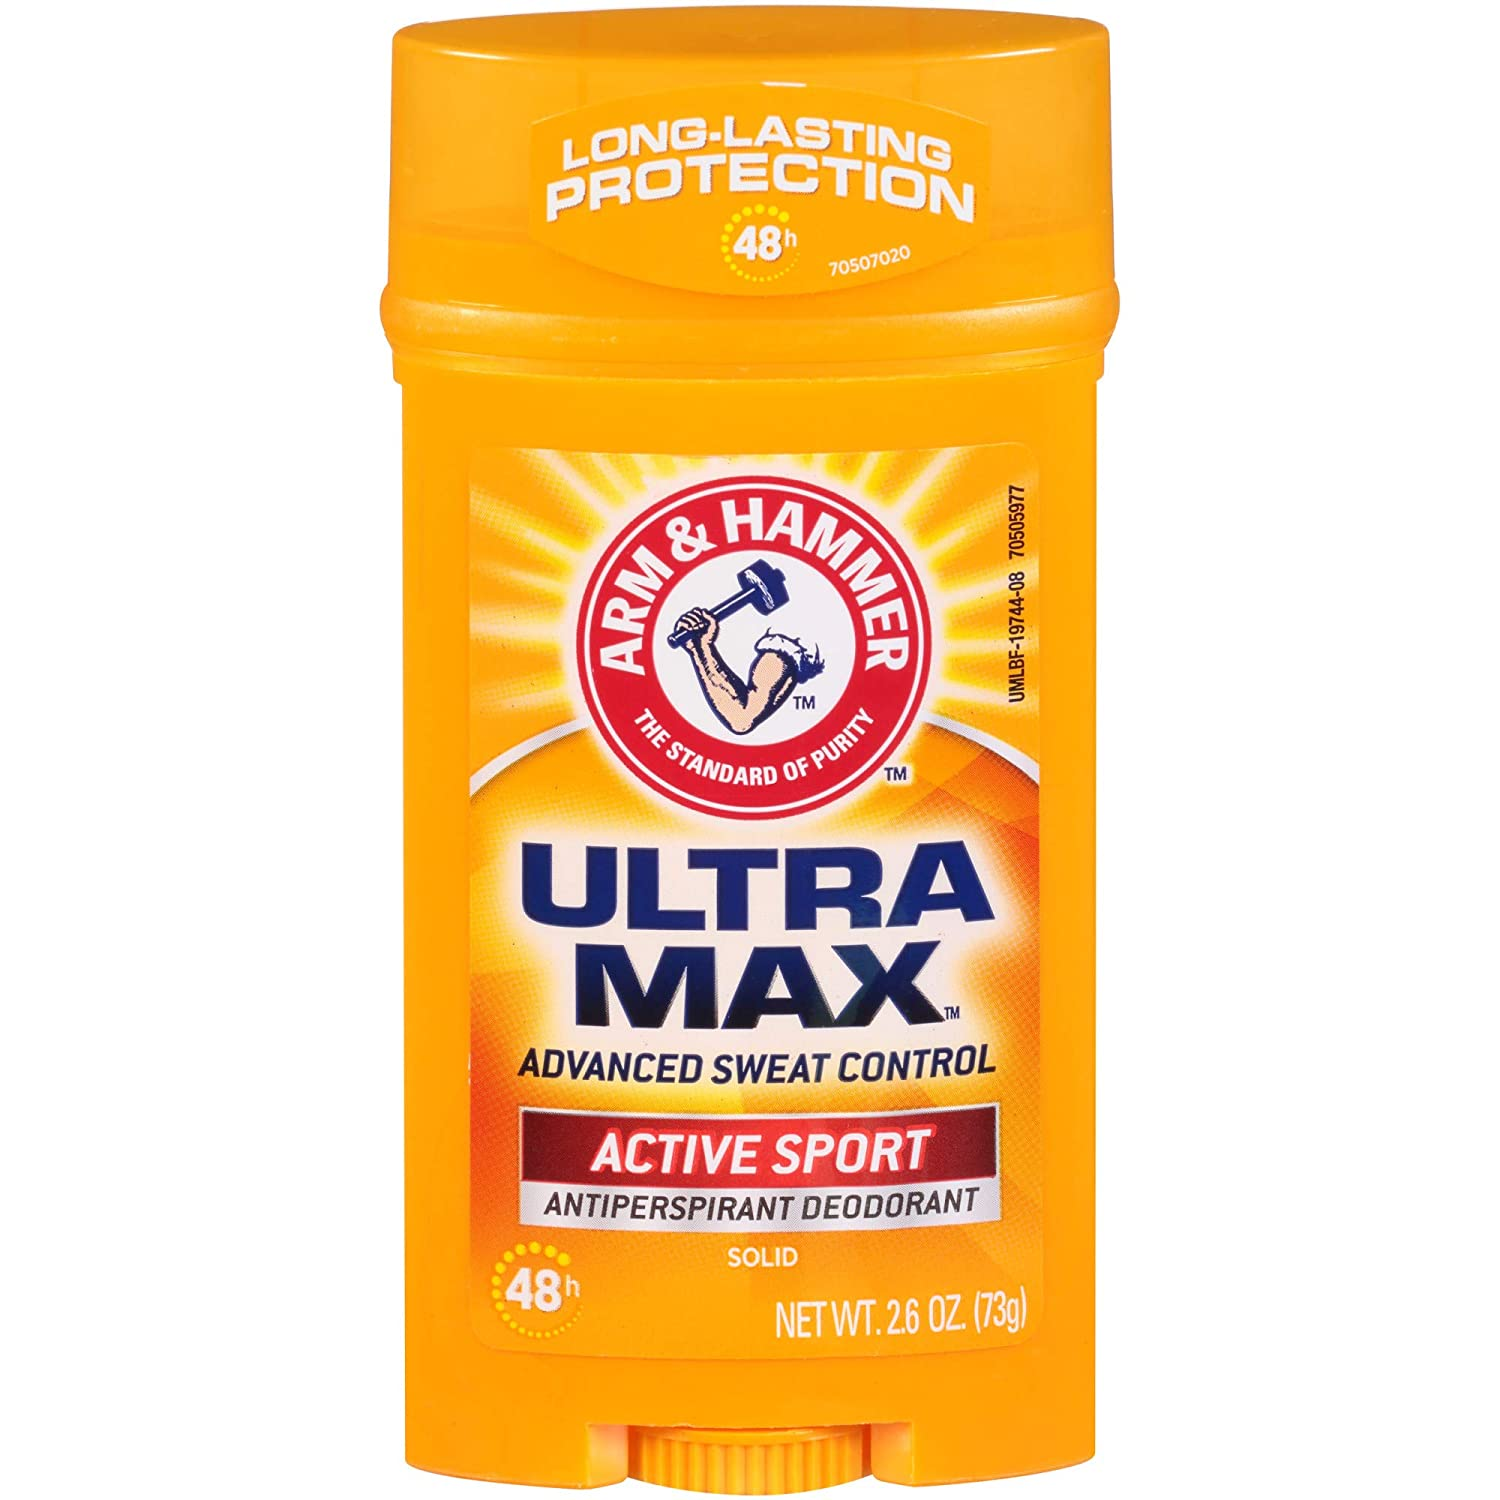 ARM & HAMMER ULTRA MAX Solid AntiPerspirant Deodorant, Active Sport, 2.6 oz. (Pack of 6)